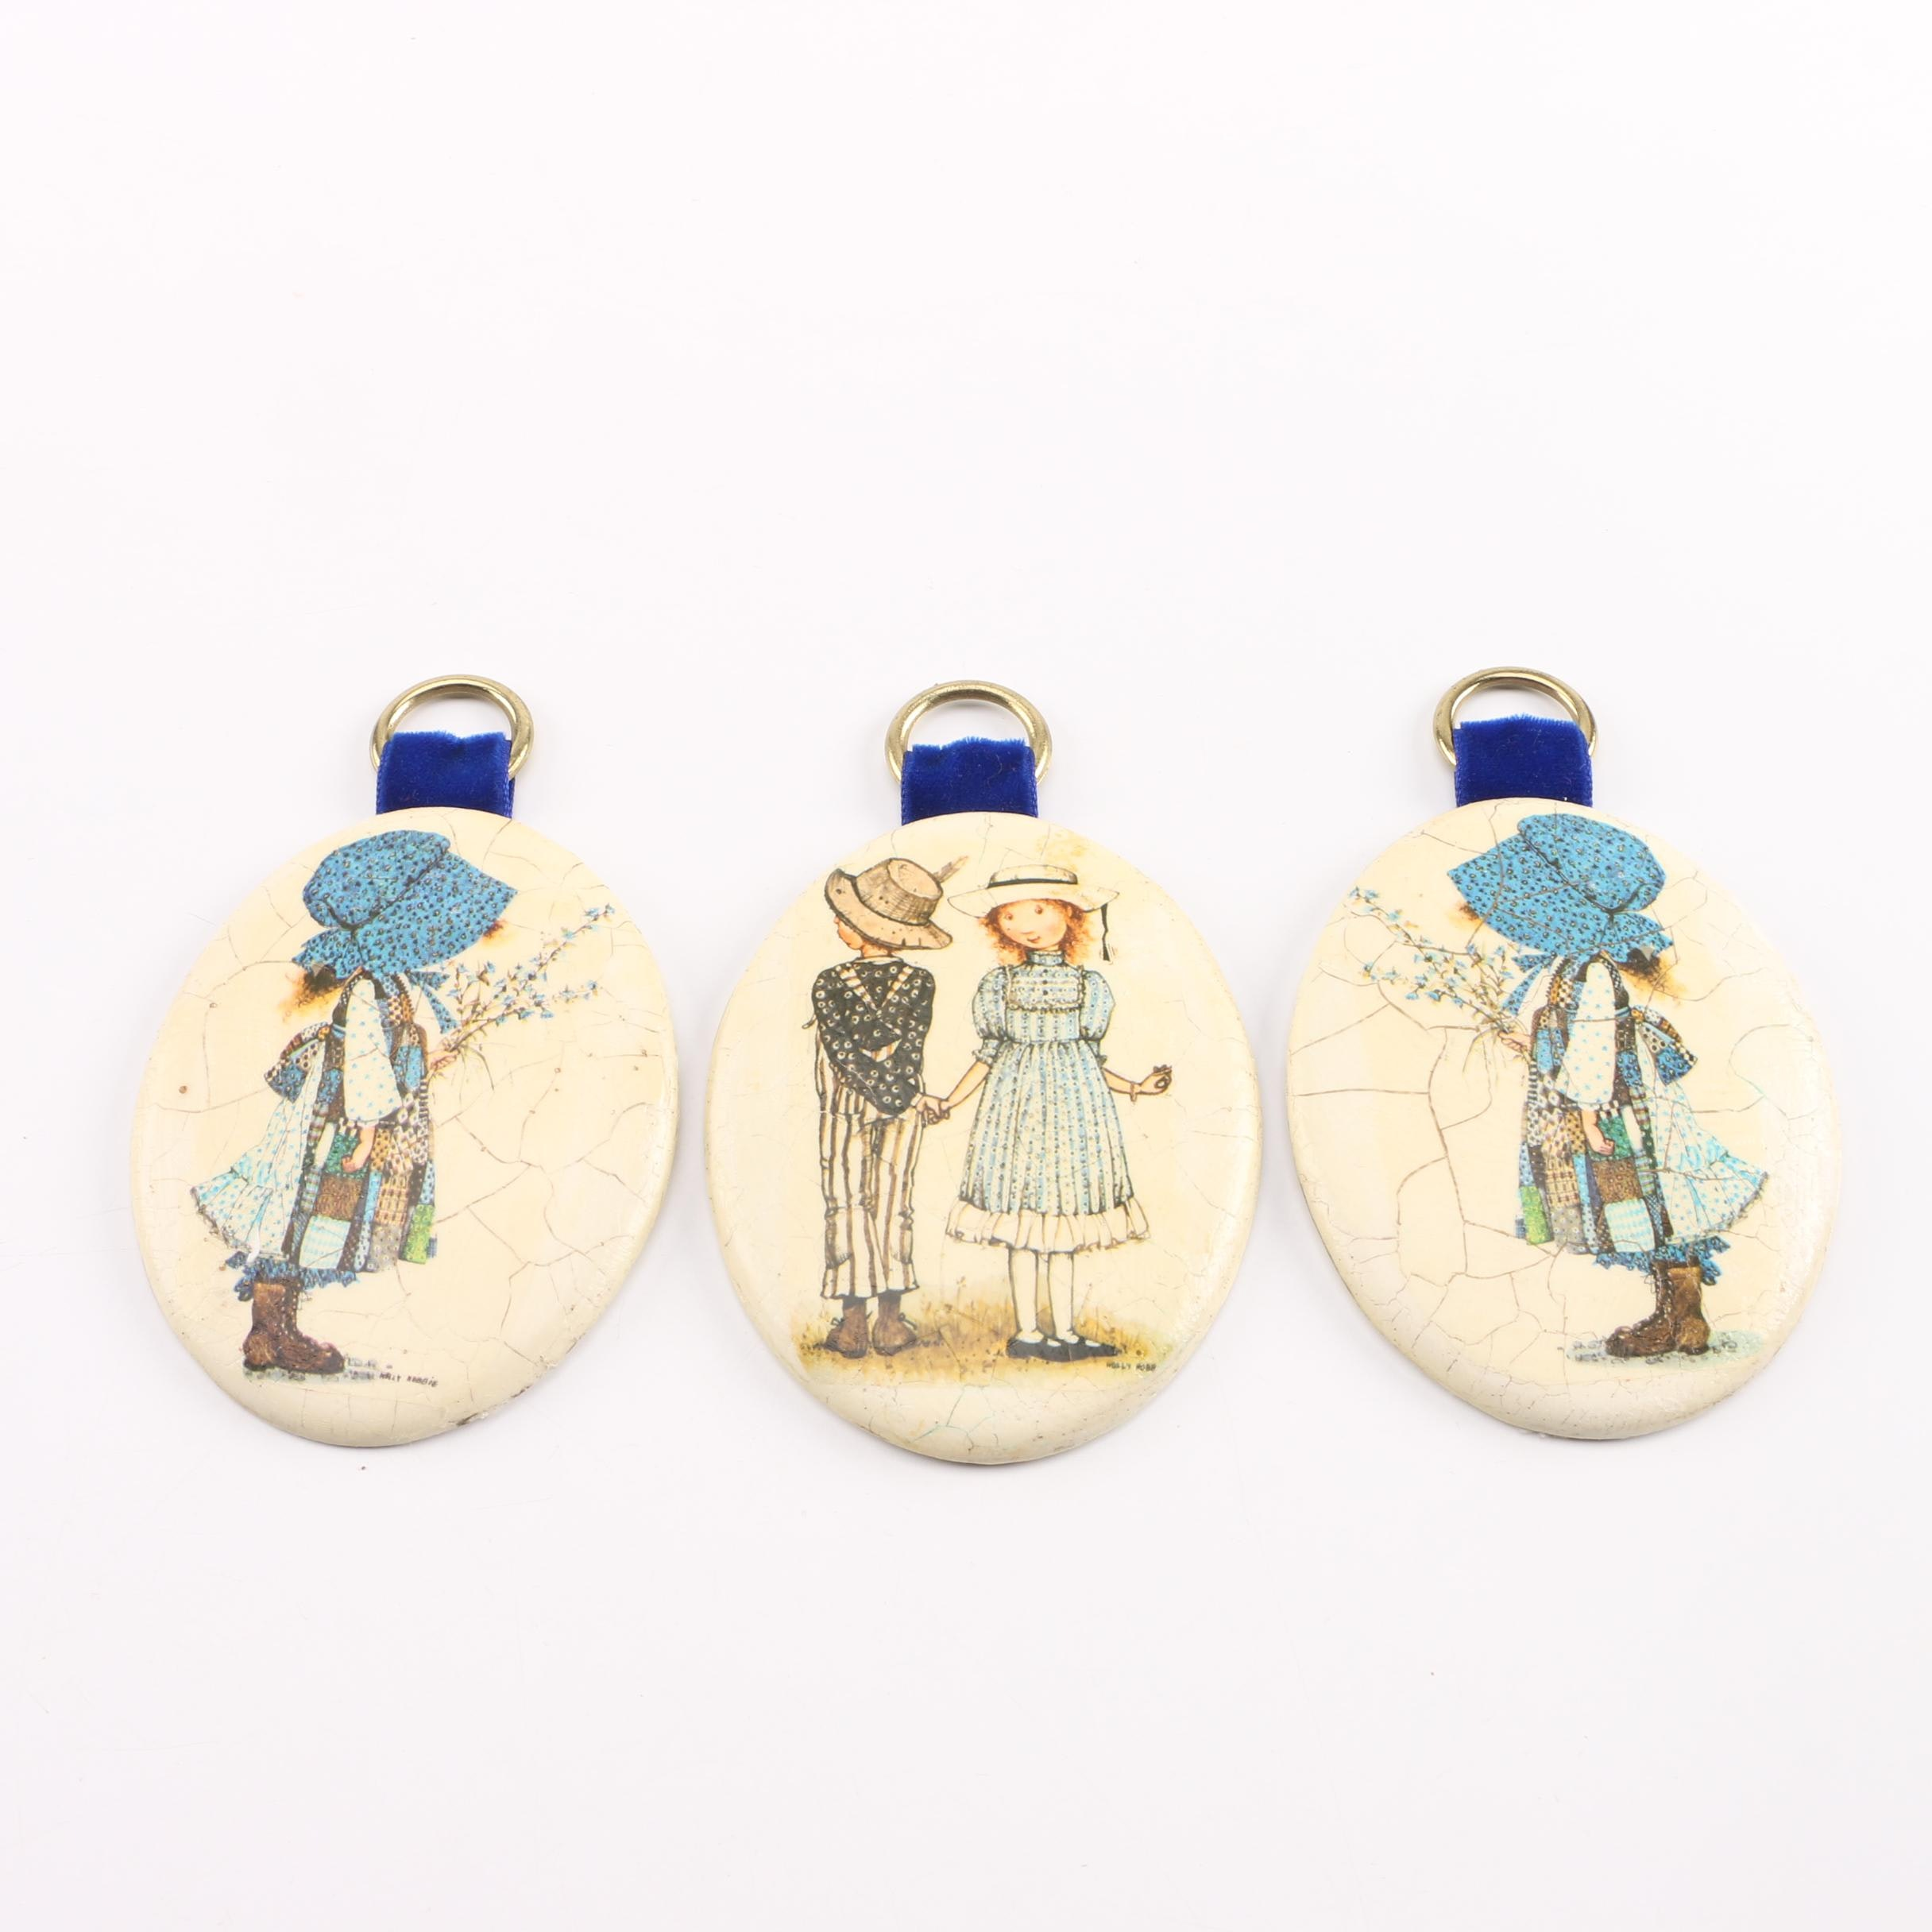 Set of Holly Hobbie Decoupage Chalkware Plaques